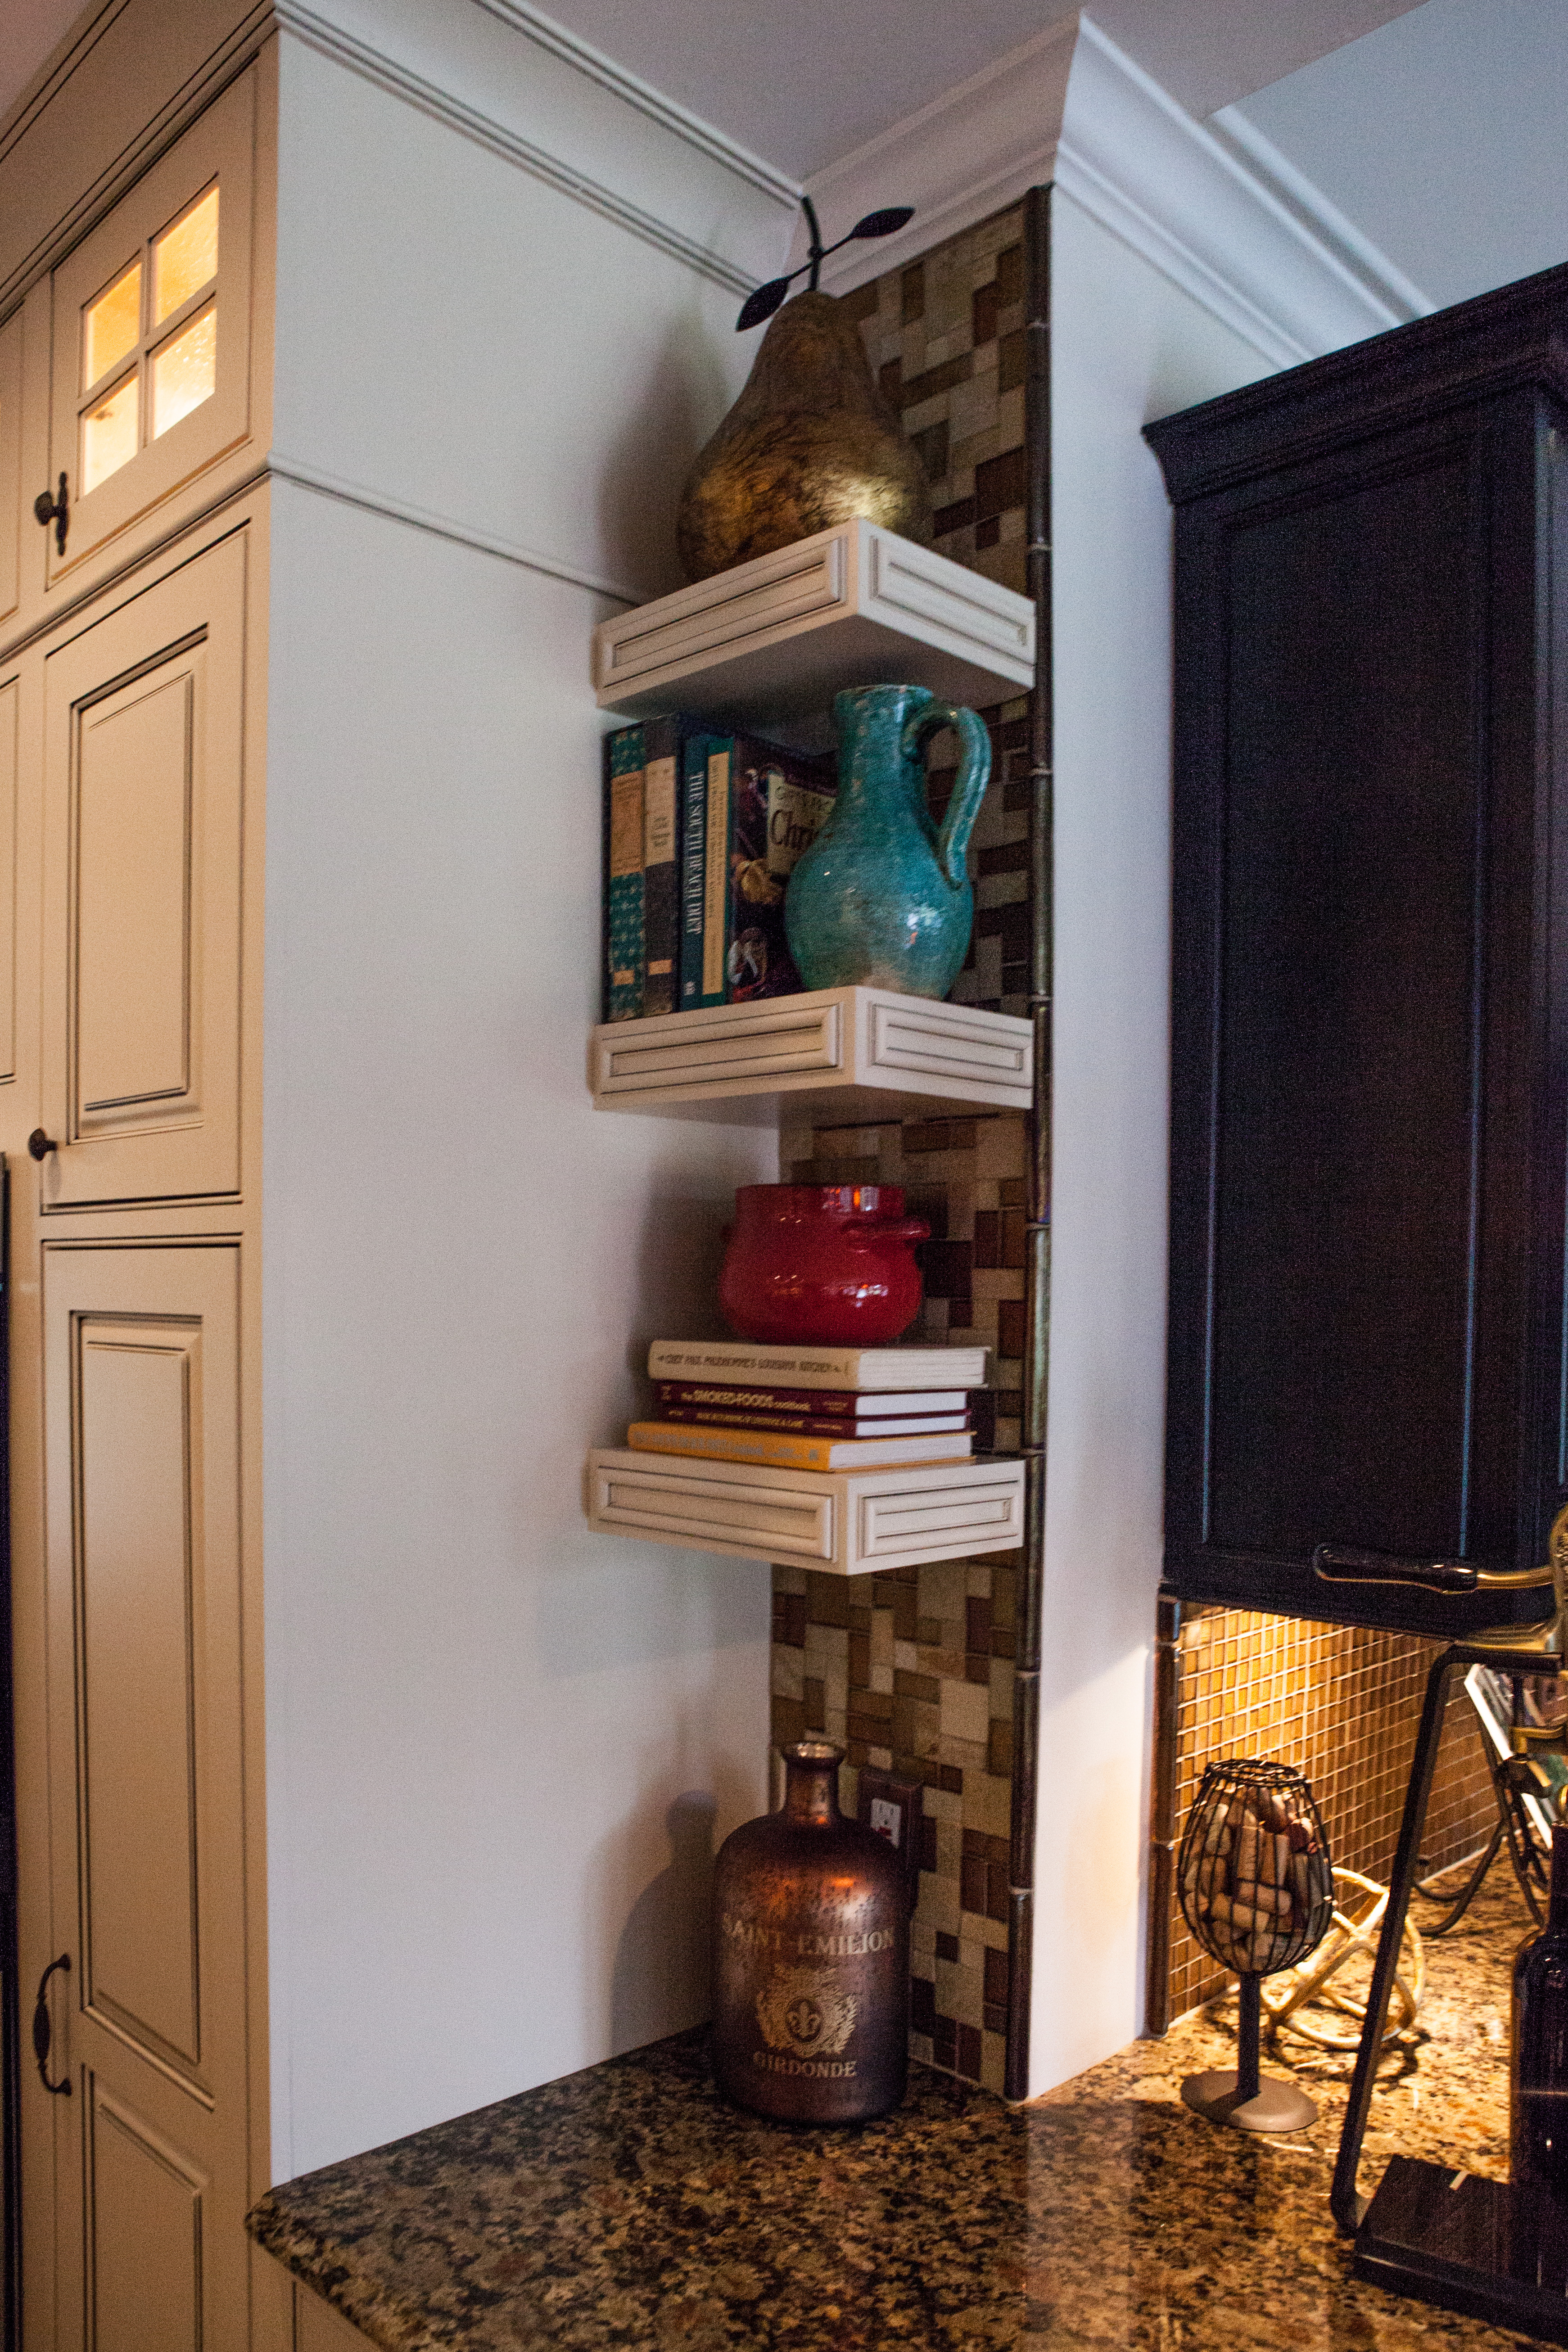 tallahassee-interior-design-photo-15